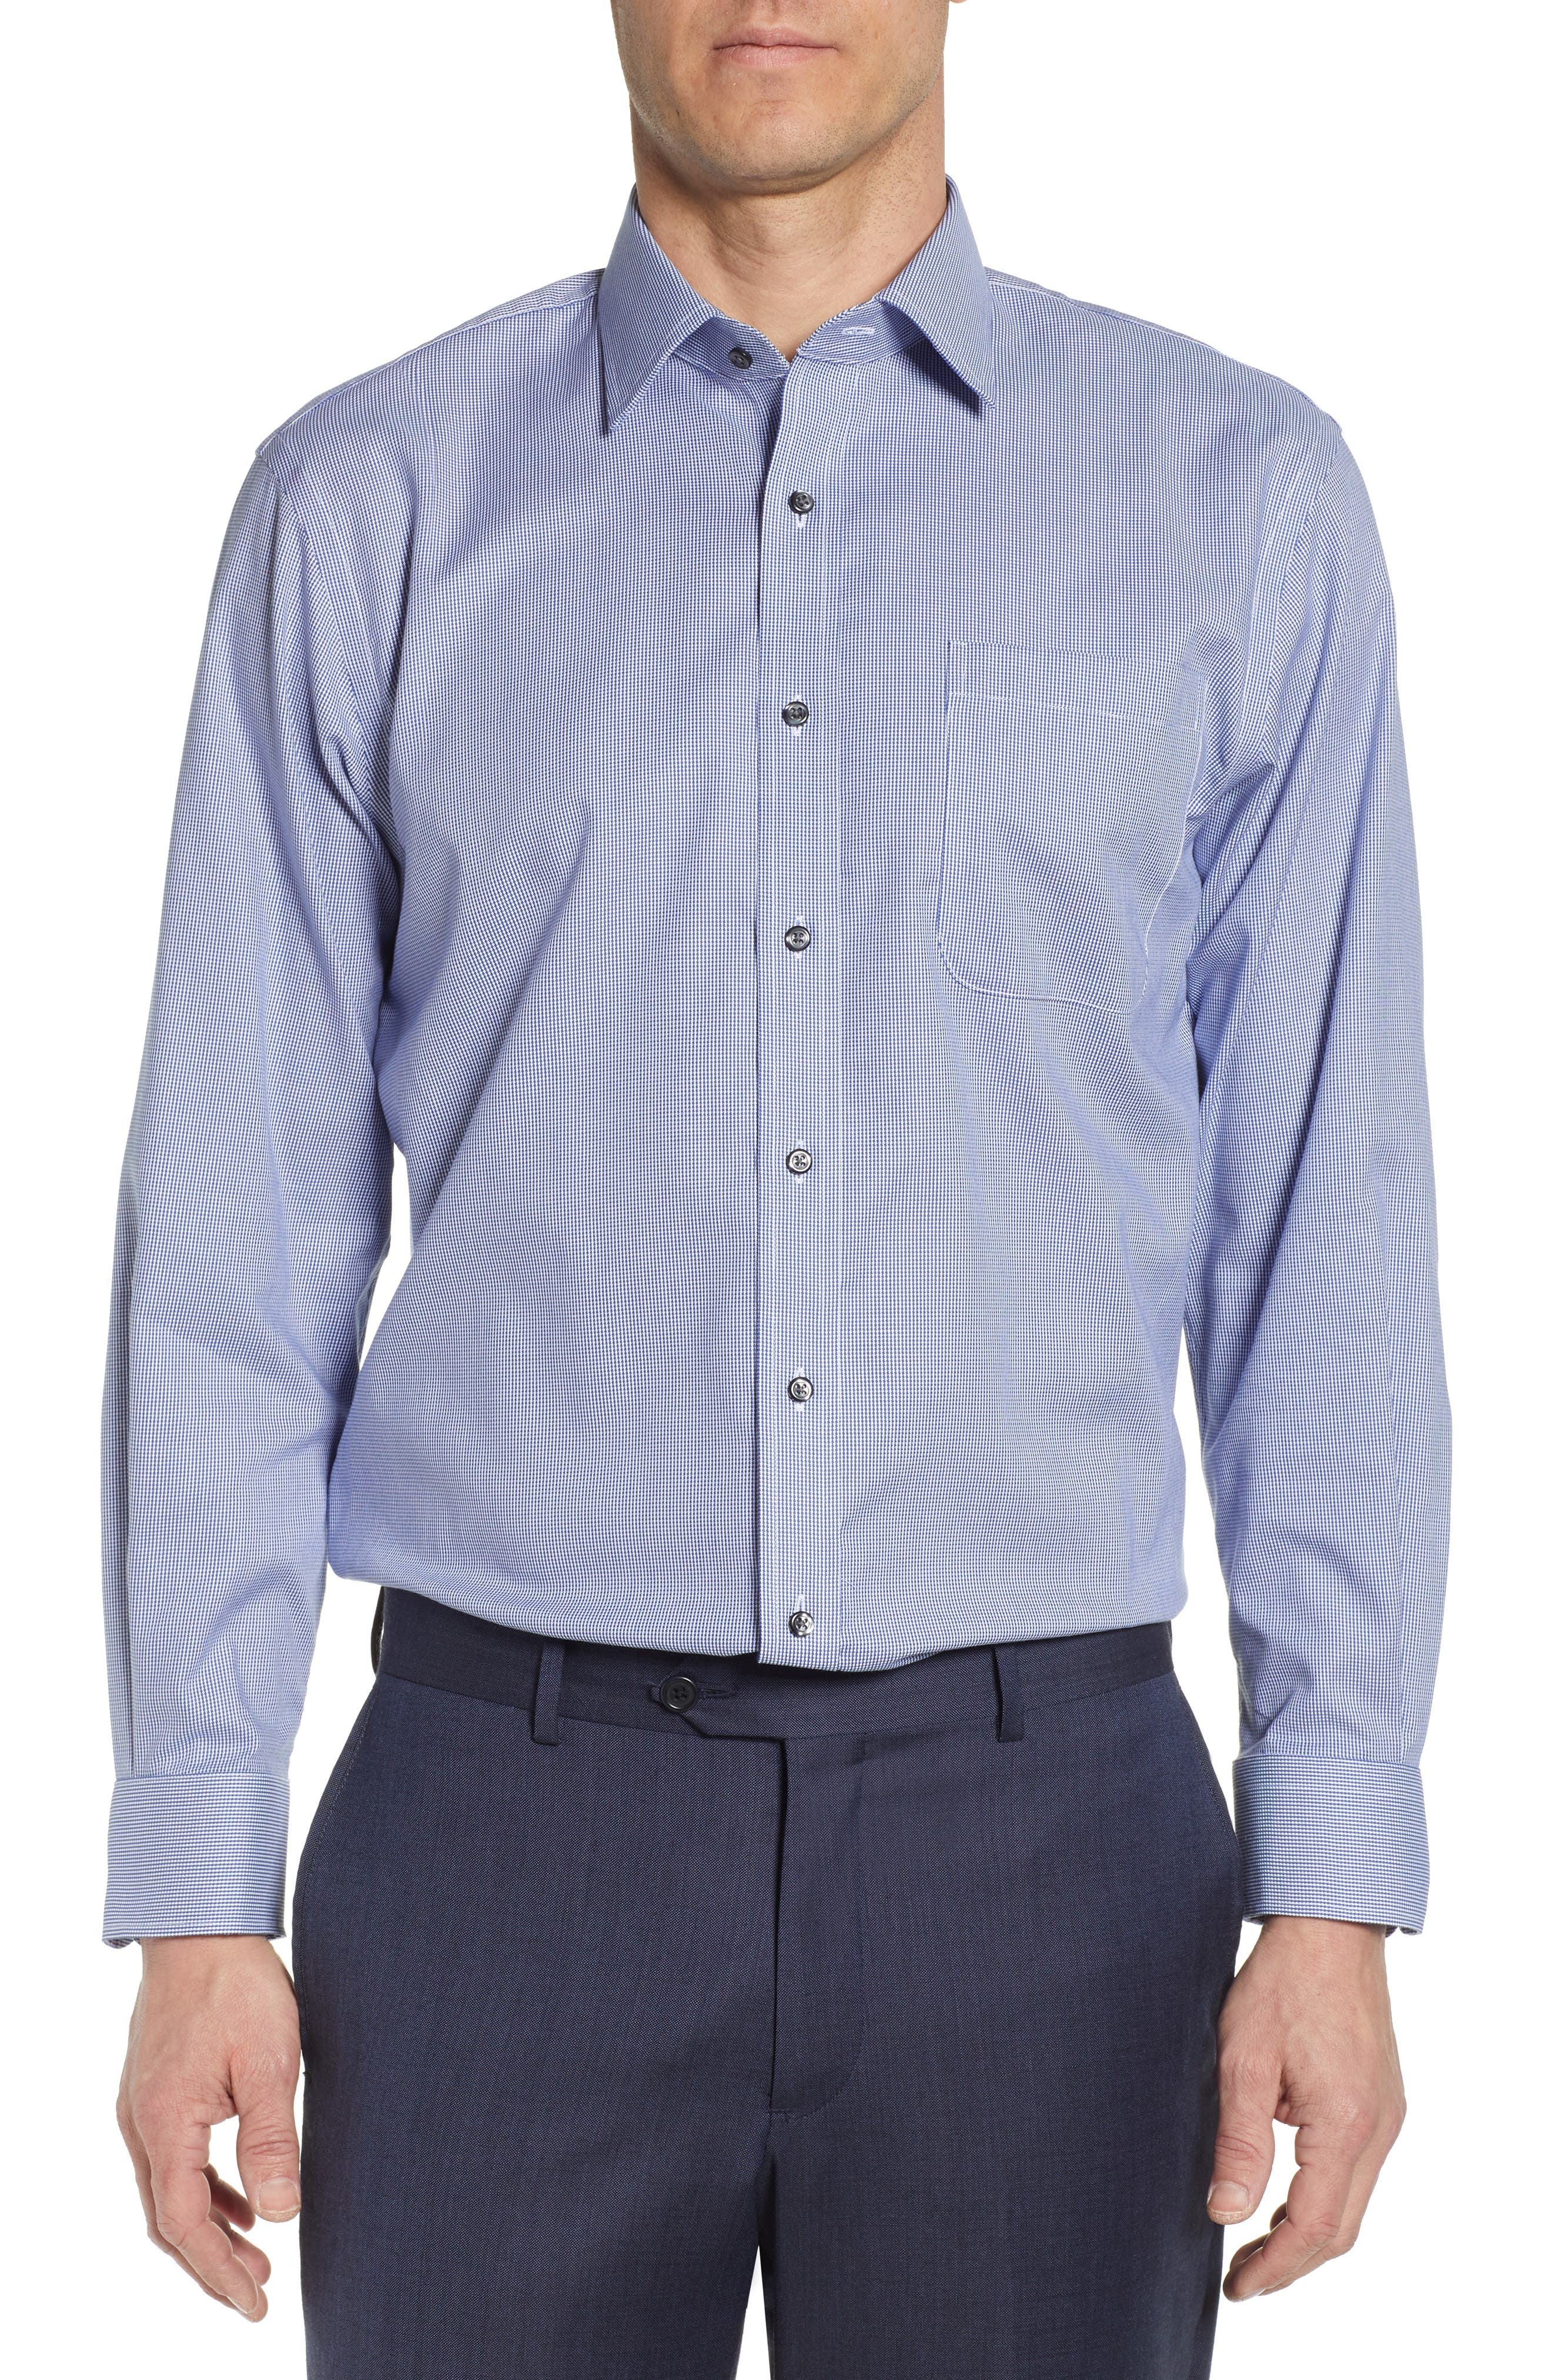 NORDSTROM MEN'S SHOP Traditional Fit Non-Iron Solid Dress Shirt, Main, color, NAVY DRESS